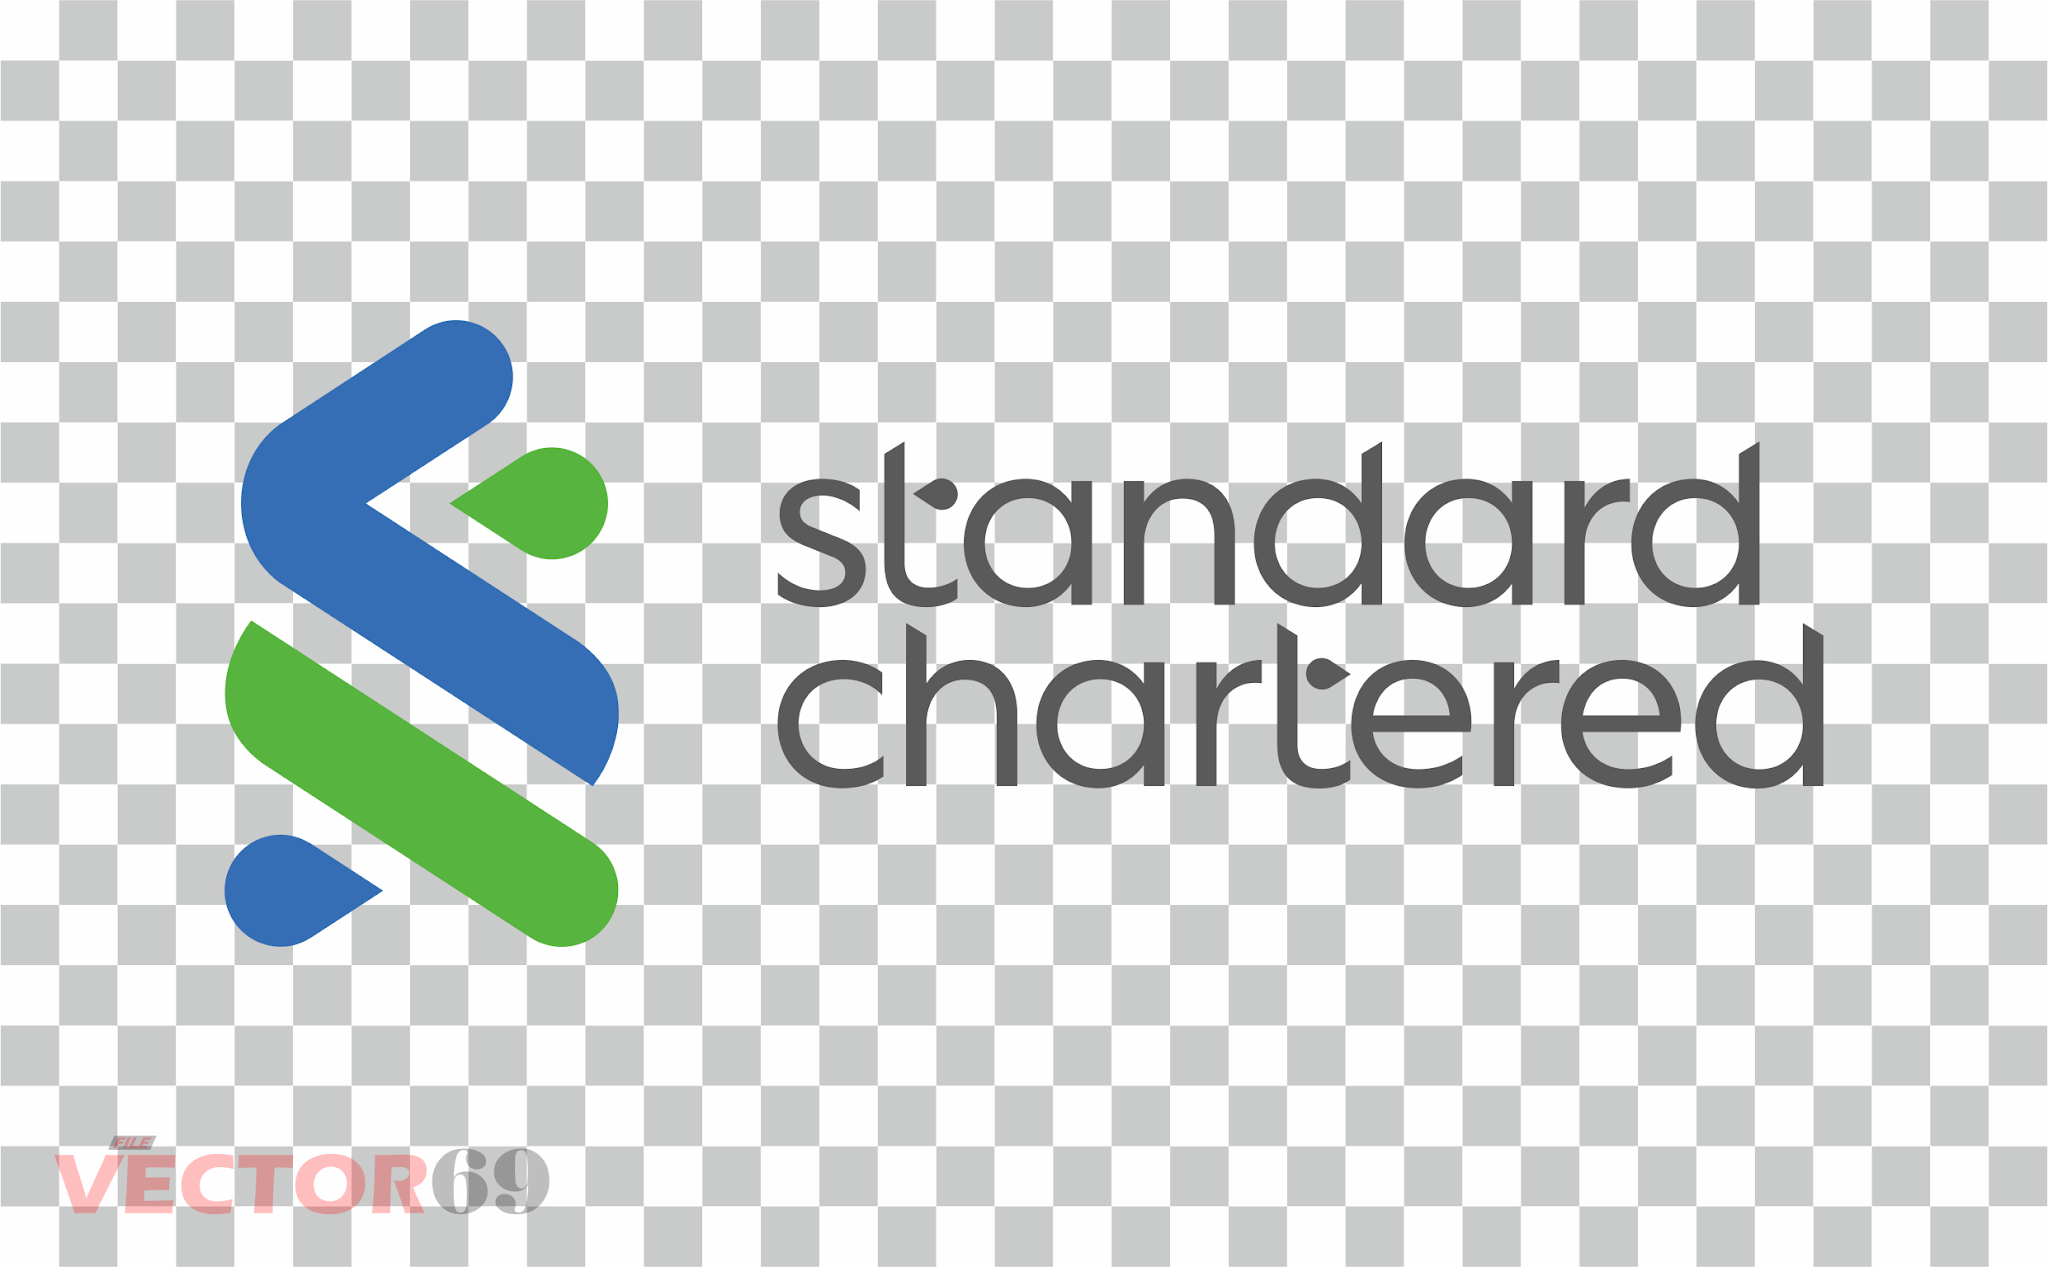 Standard Chartered Logo - Download Vector File PNG (Portable Network Graphics)